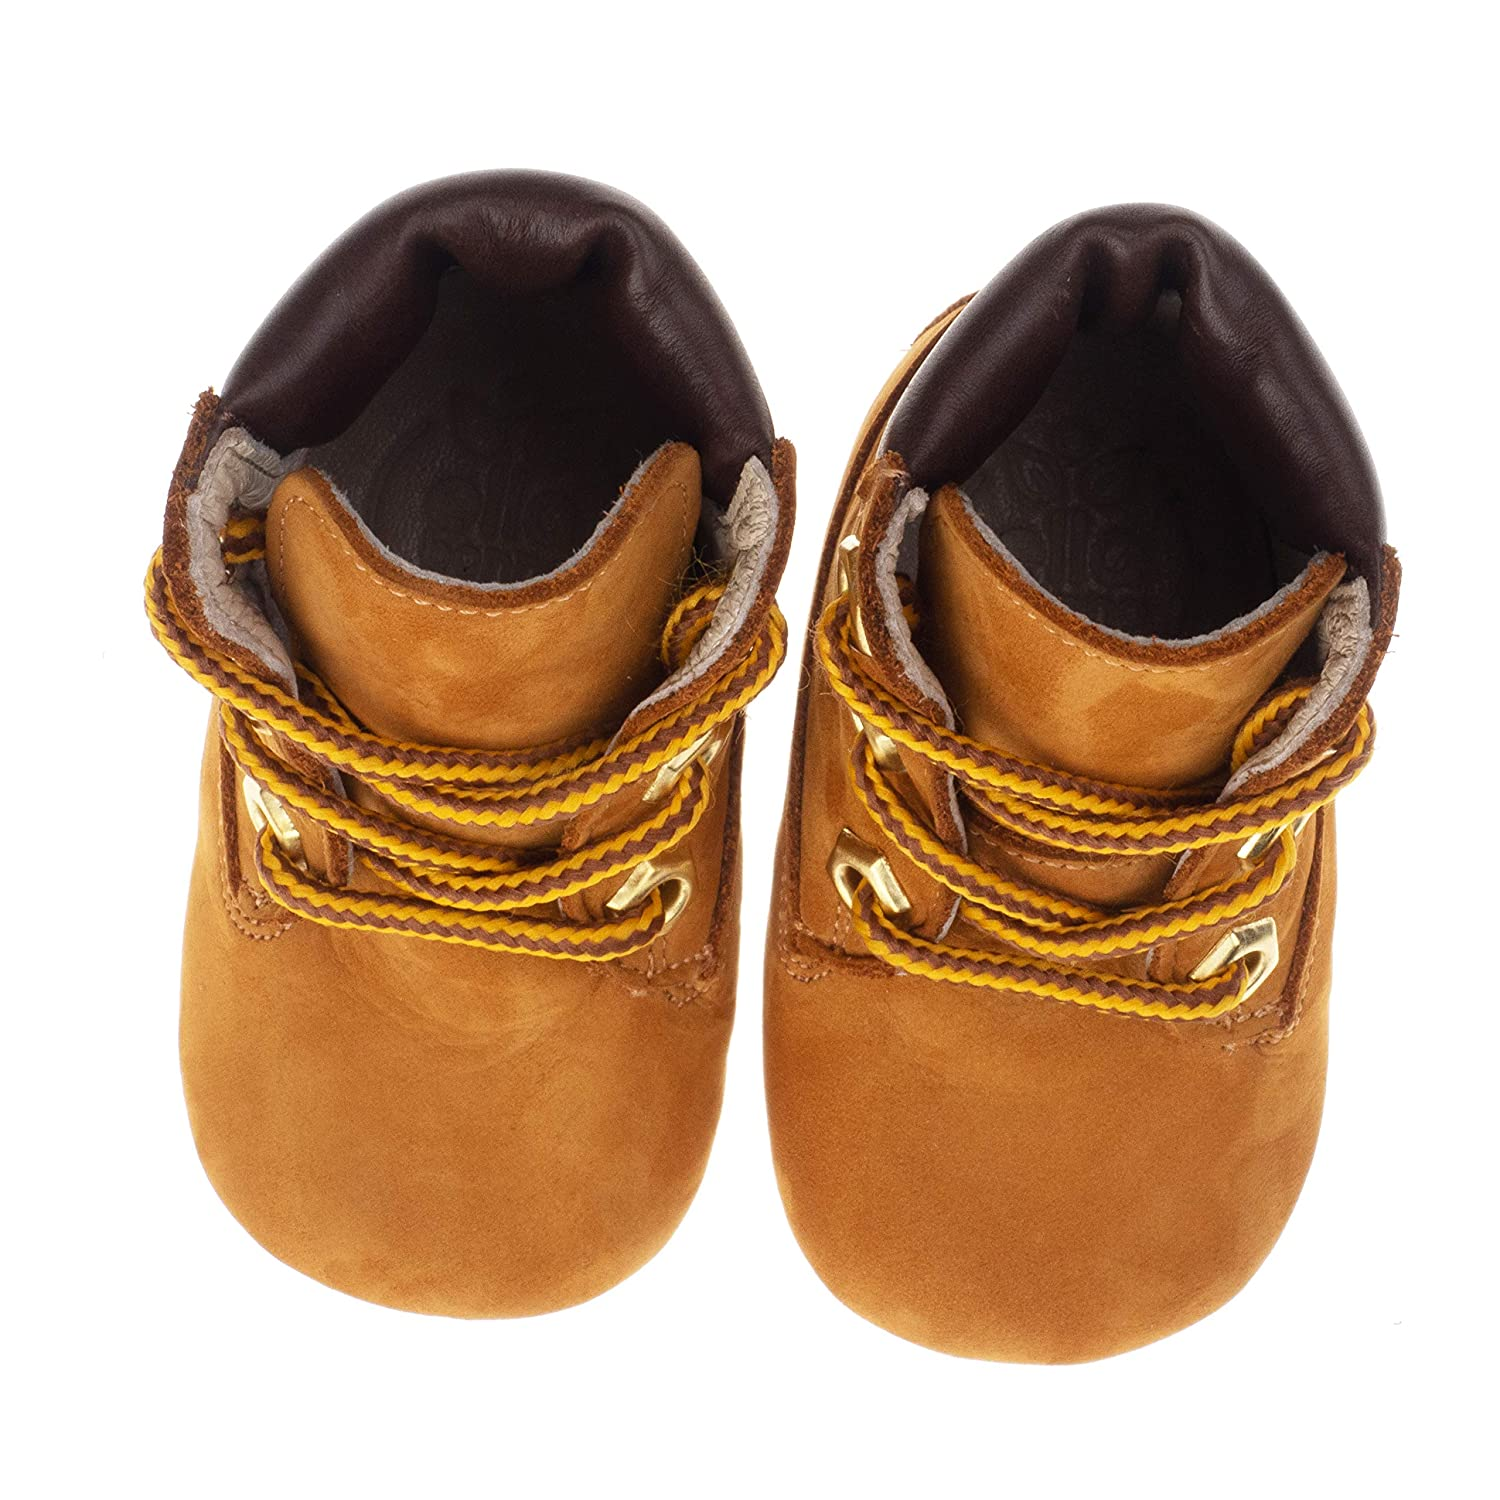 Ella Bonna Baby Boots for Baby Boys Girls Breathable Make Cowhide Leather Hand-Sewn Designer Boots Full Grain Leather Soft Insole and Sole Handmade Boots